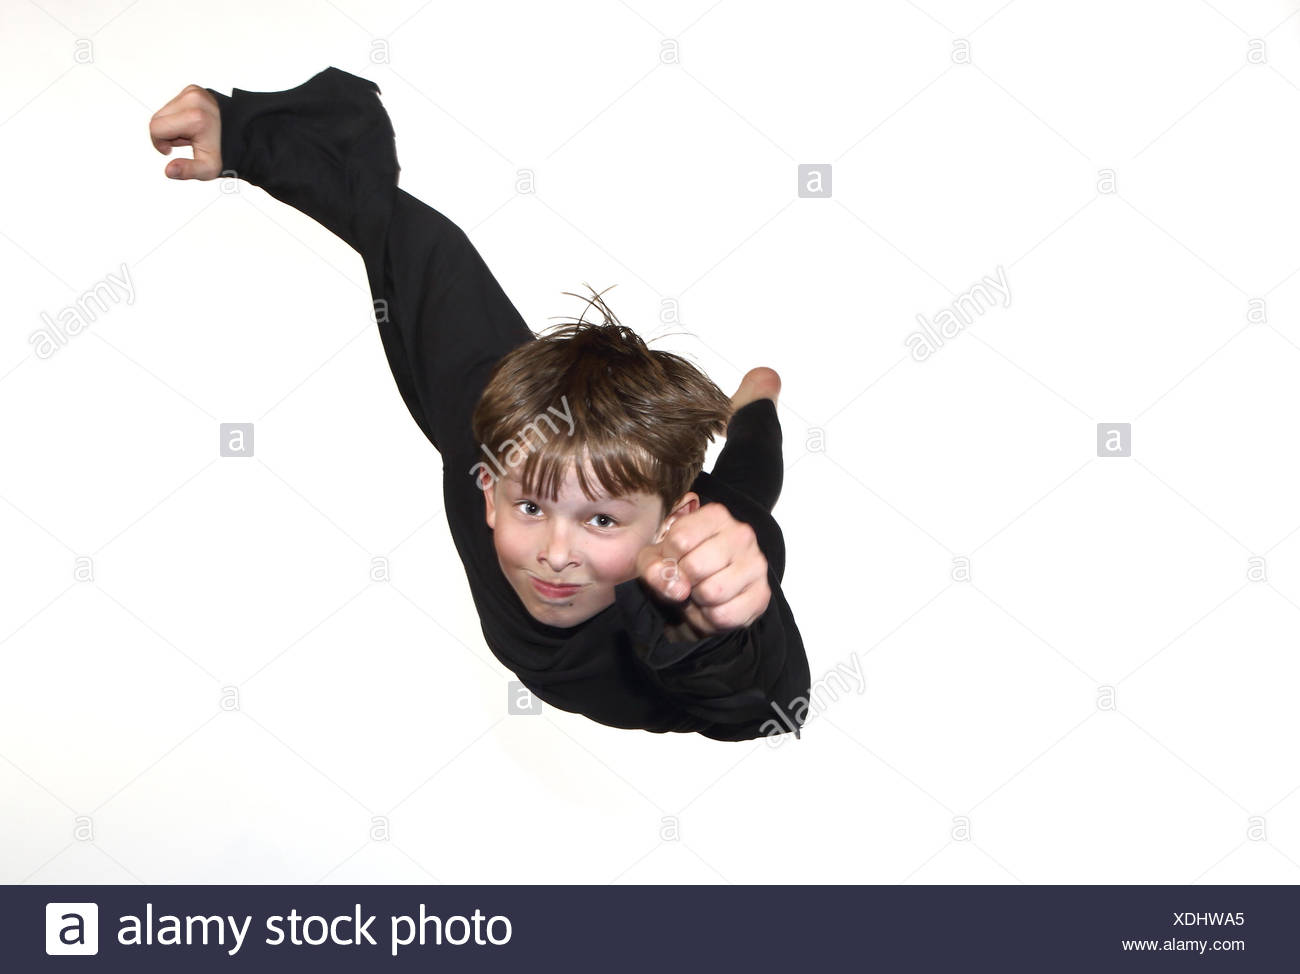 Berlin, Germany, boy appears to float in Superman-style through the air - Stock Image